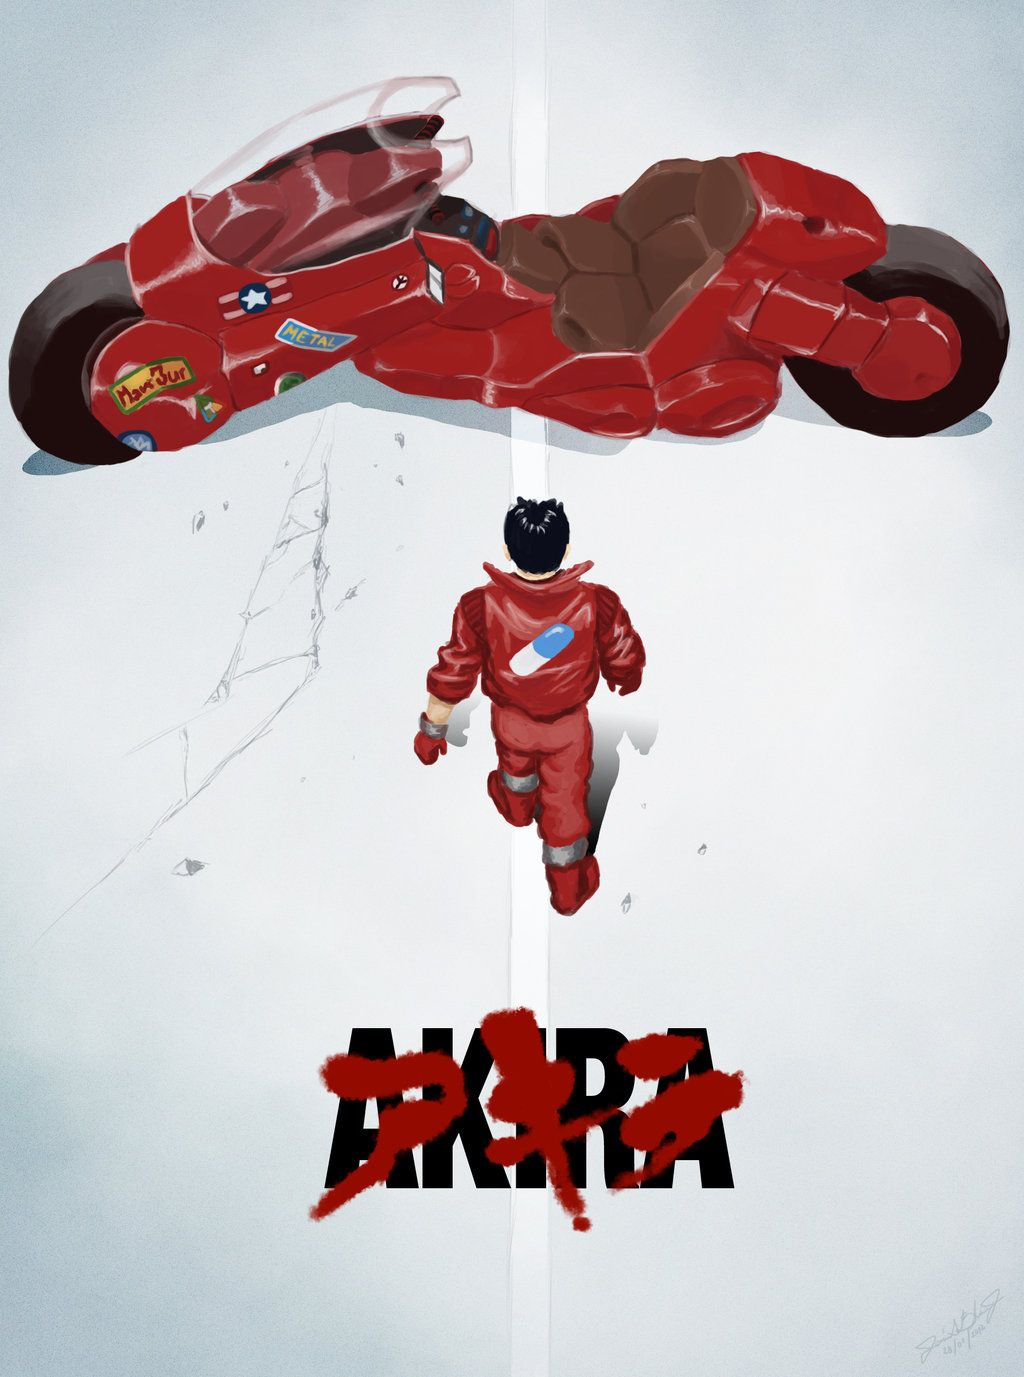 1024x1377 Anime Akira wallpapers (Desktop, Phone, Tablet) - Awesome Desktop ...